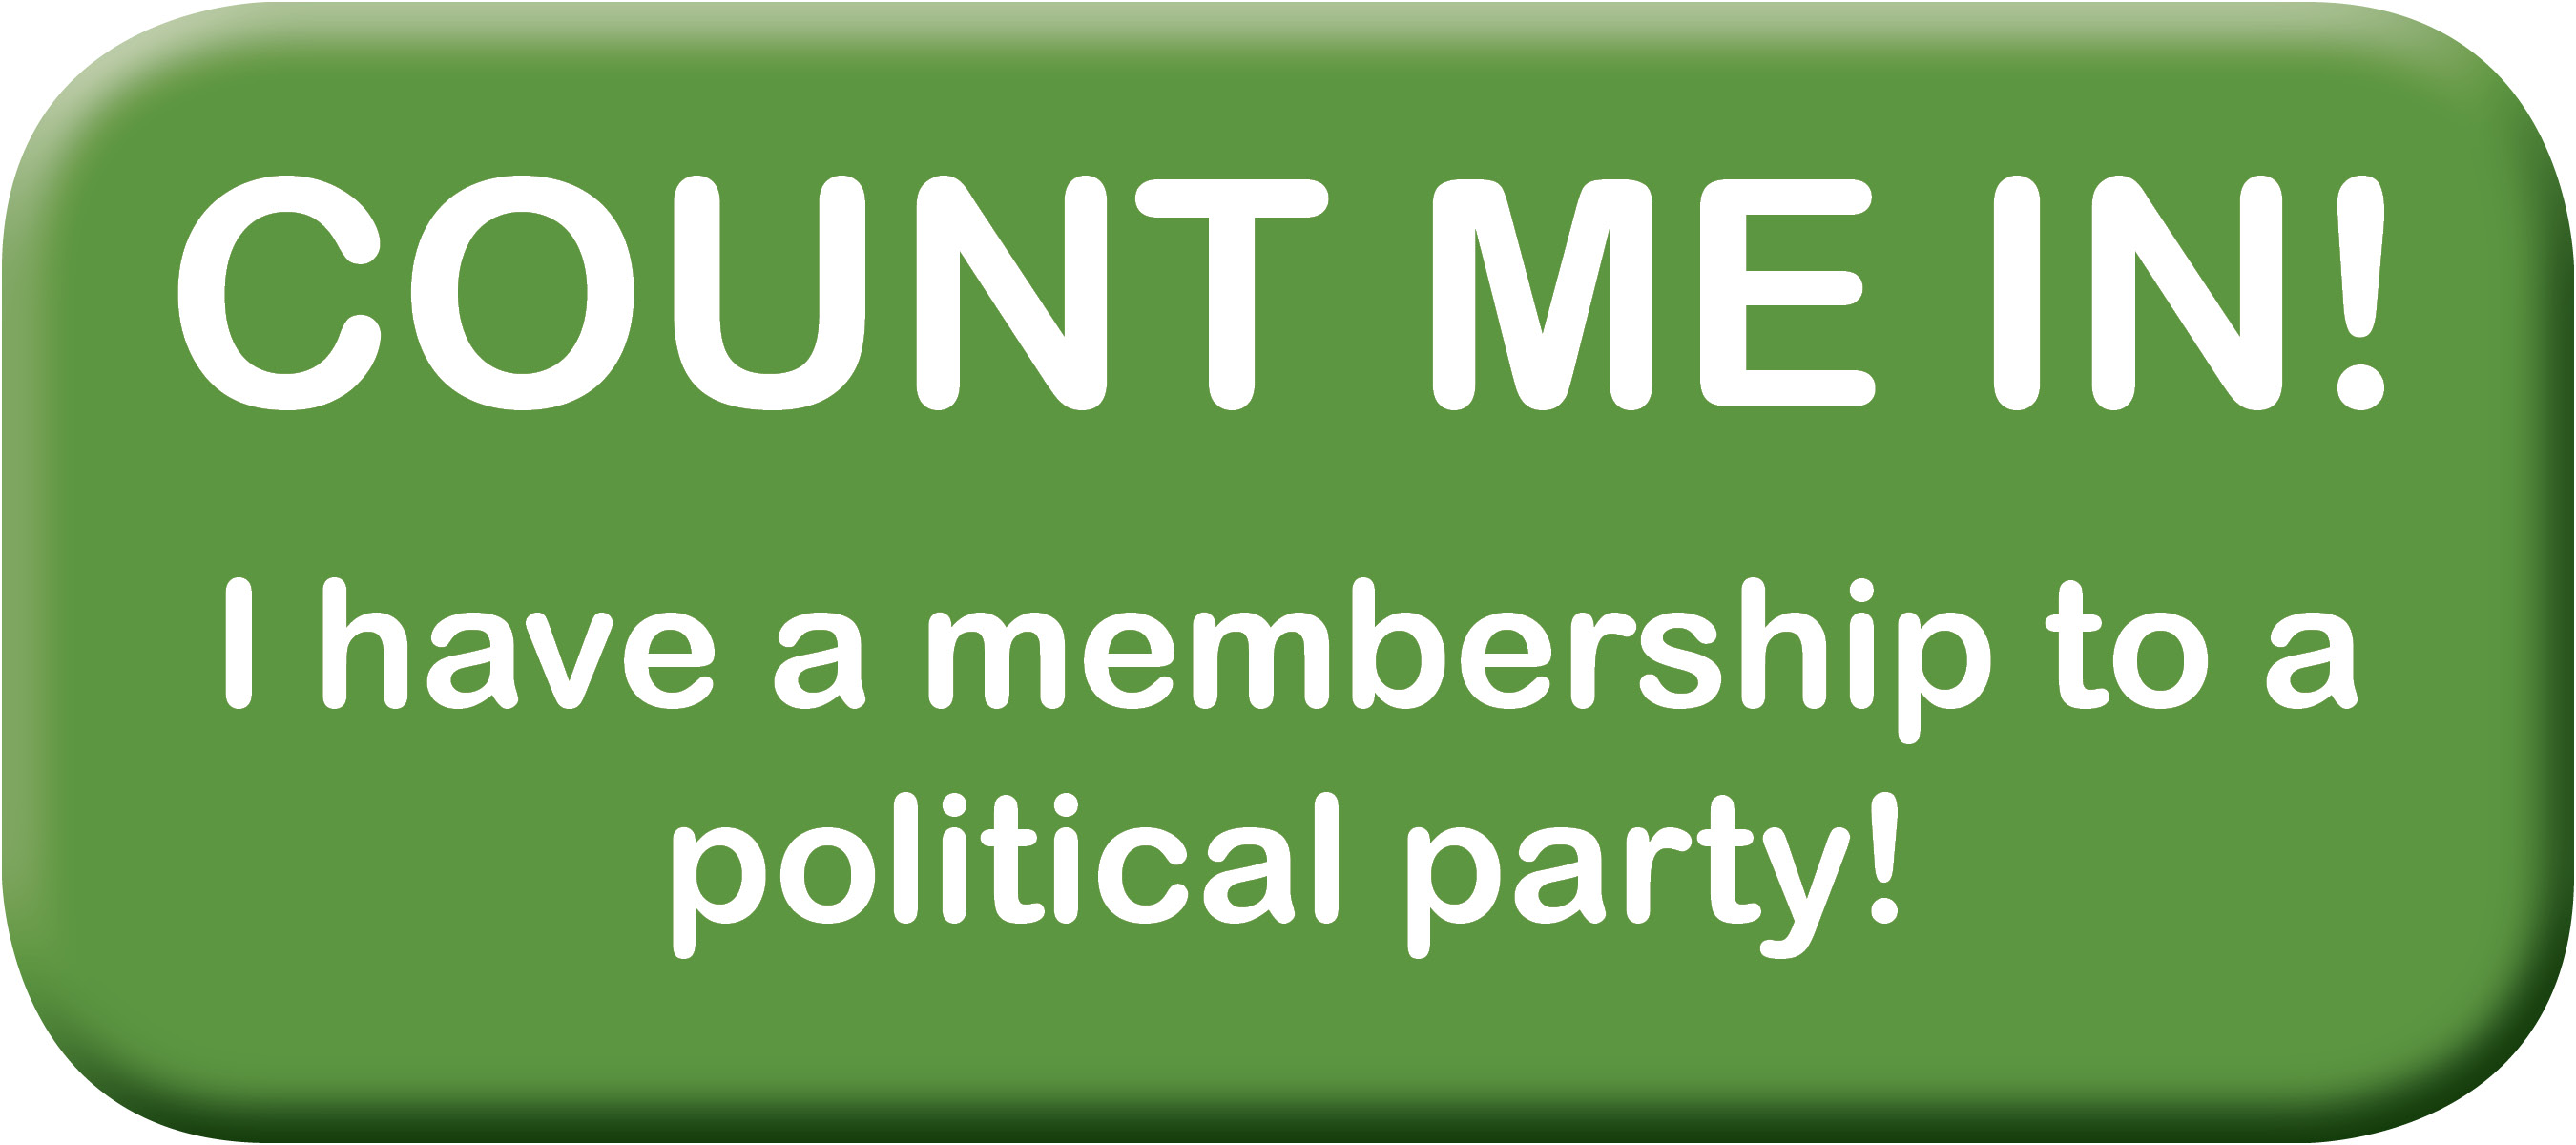 PCE_button_count_me_in_I_have_a_membership_to_a_political_party.jpg